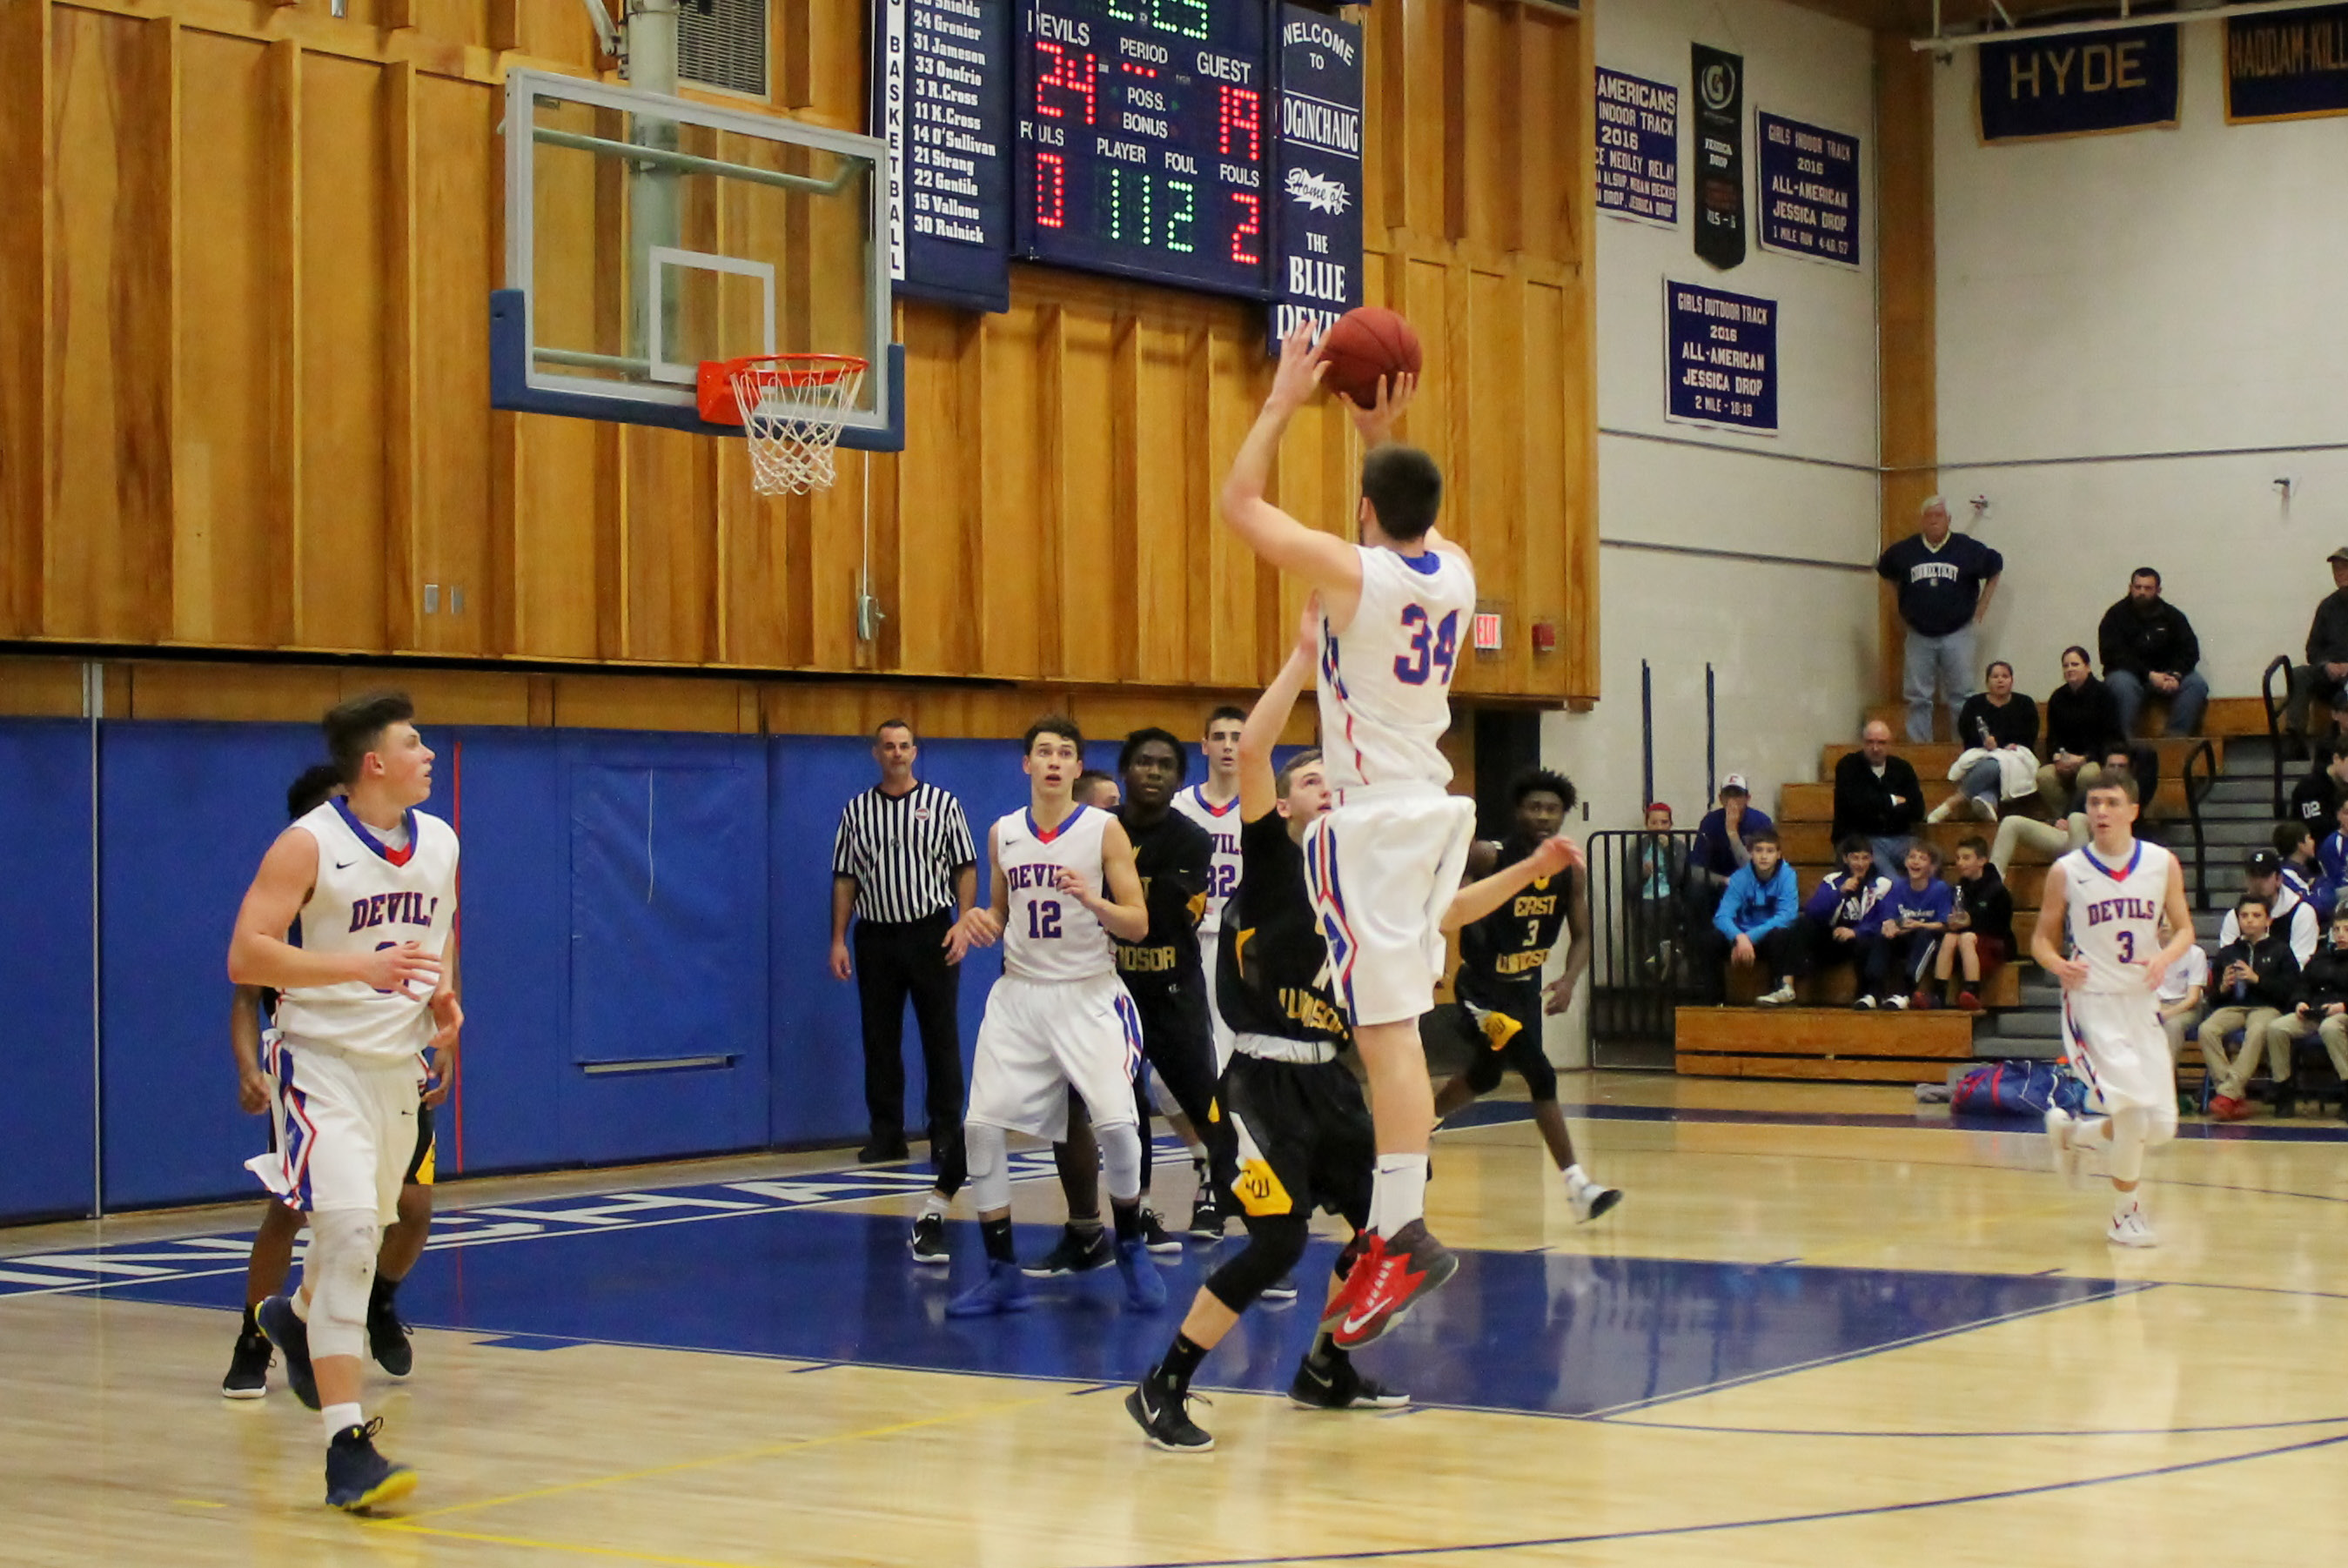 Elevating for a jump shot, Coginchaug boys basketball player Jack Murphy tries to extend the lead for the Blue Devils against East Windsor on March 7. The game went to double overtime before Coginchaug won, 50-46.| Mark Dionne, Town Times